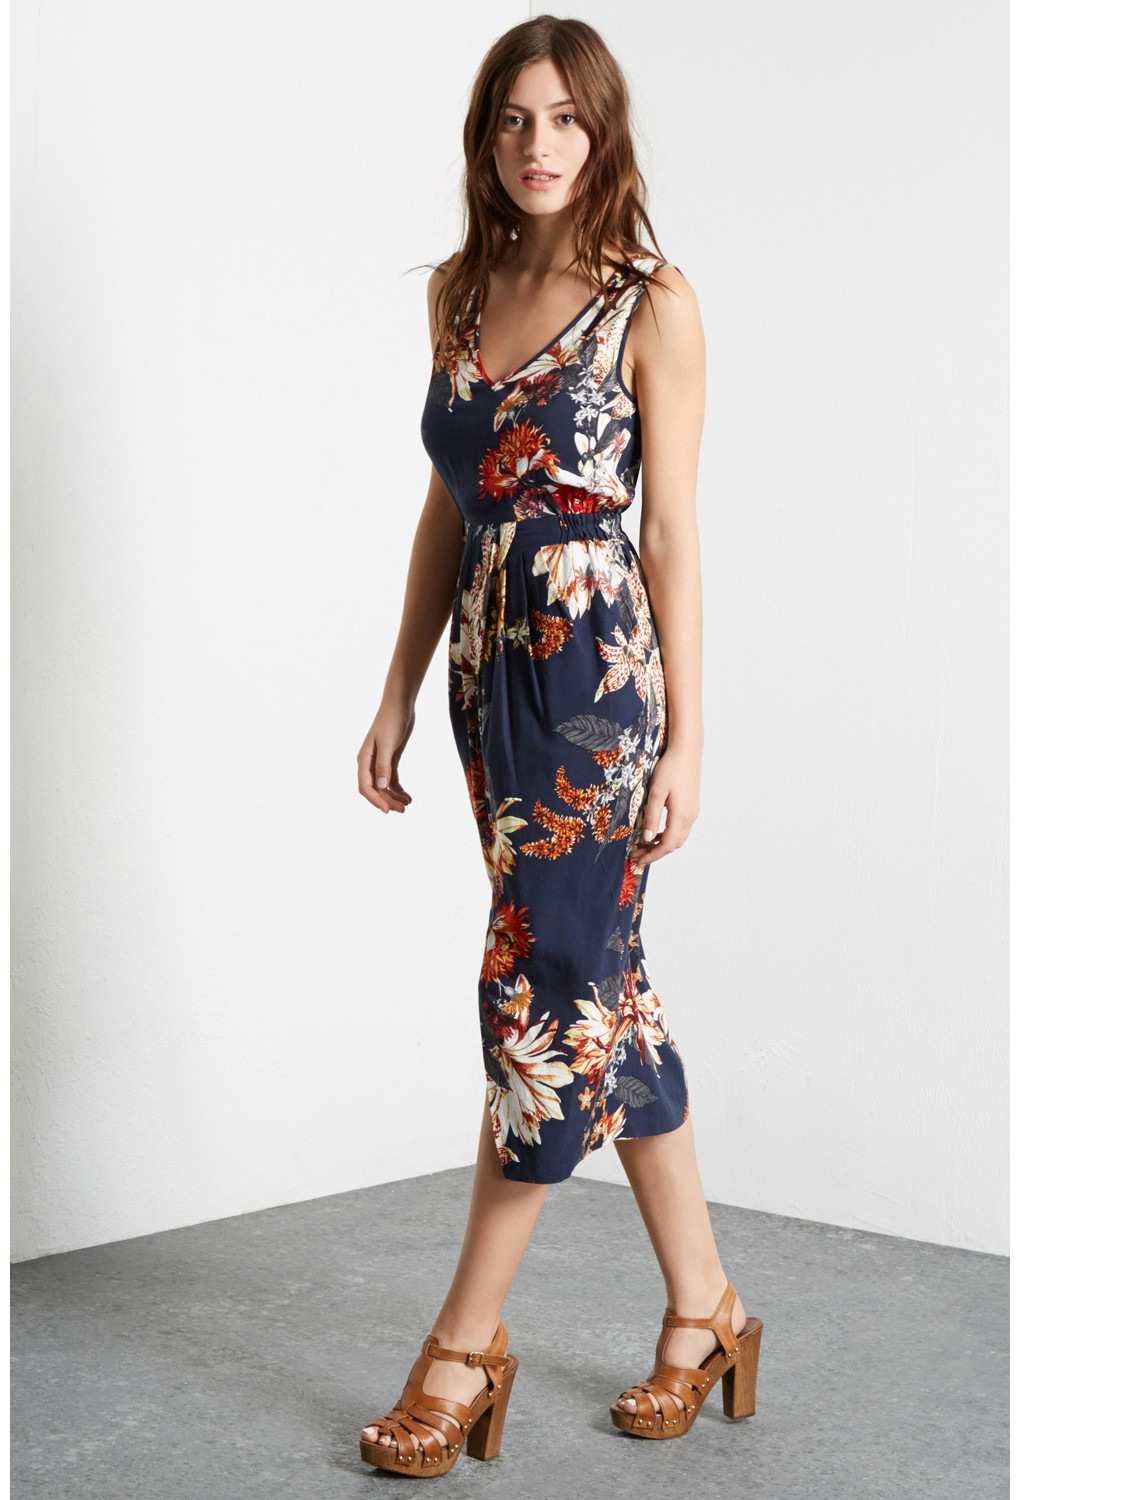 Get the cute midi dresses @Oshoplive. The latest collection for trendy midi dresses is prepared here. All in Chic, classy, selected style. Free shipping!